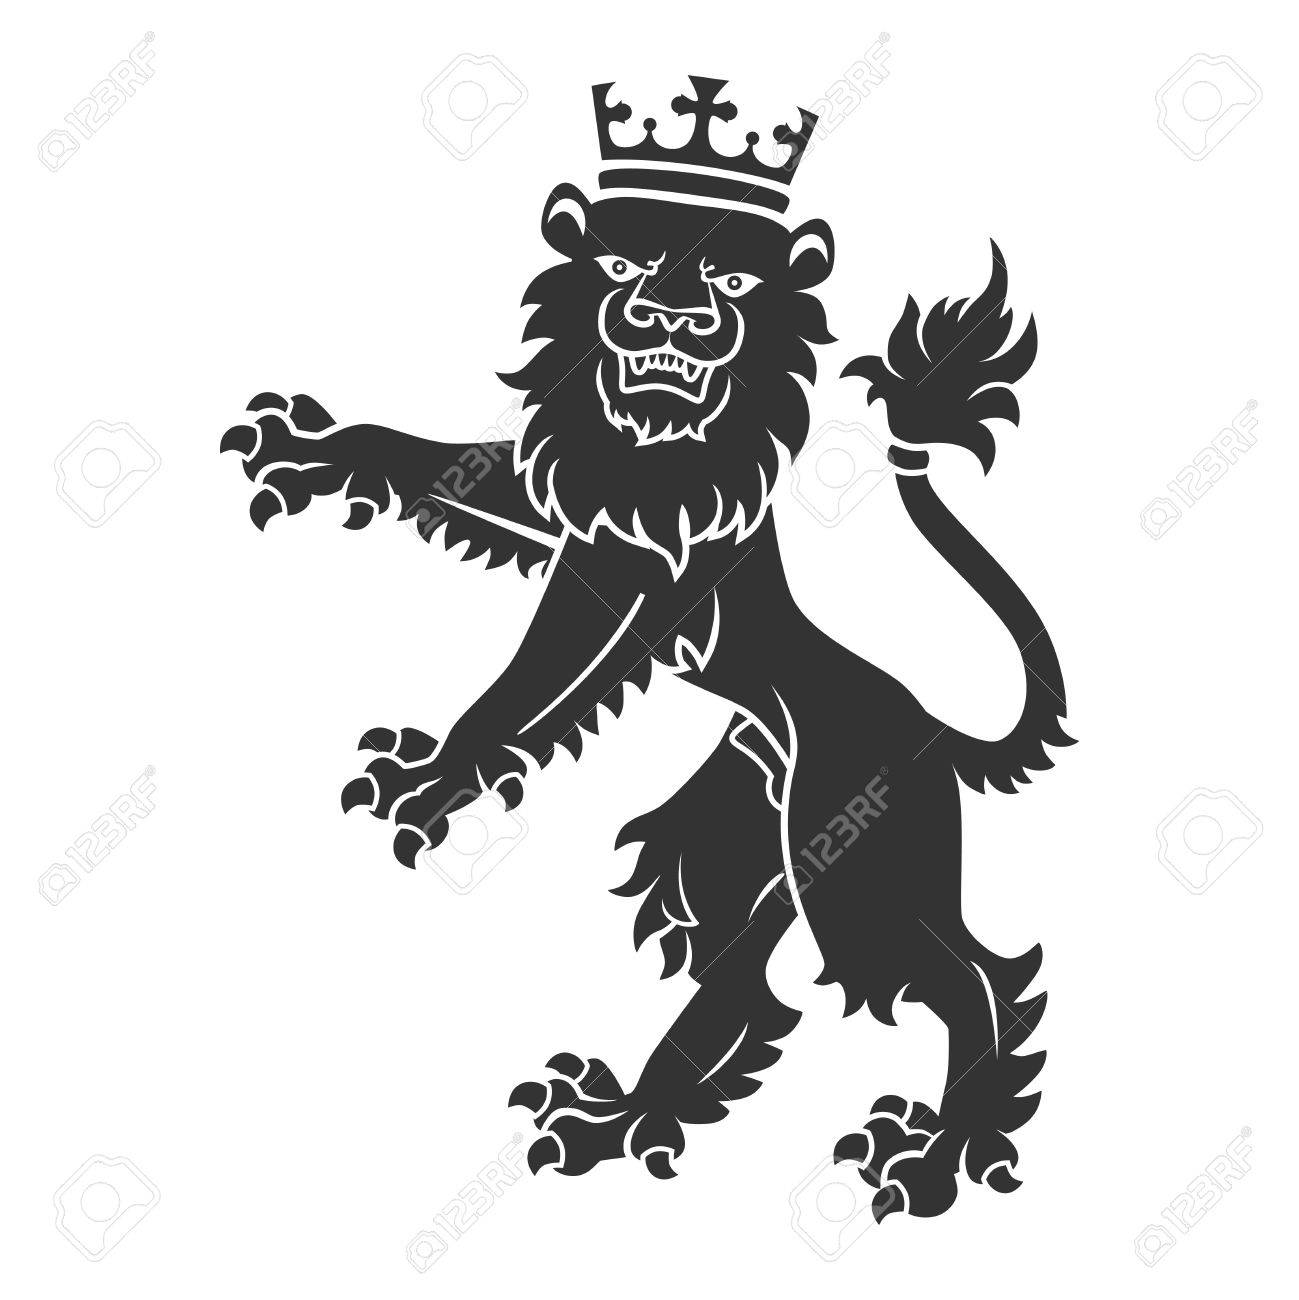 Black Standing Lion With Crown For Heraldry Or Tattoo Design